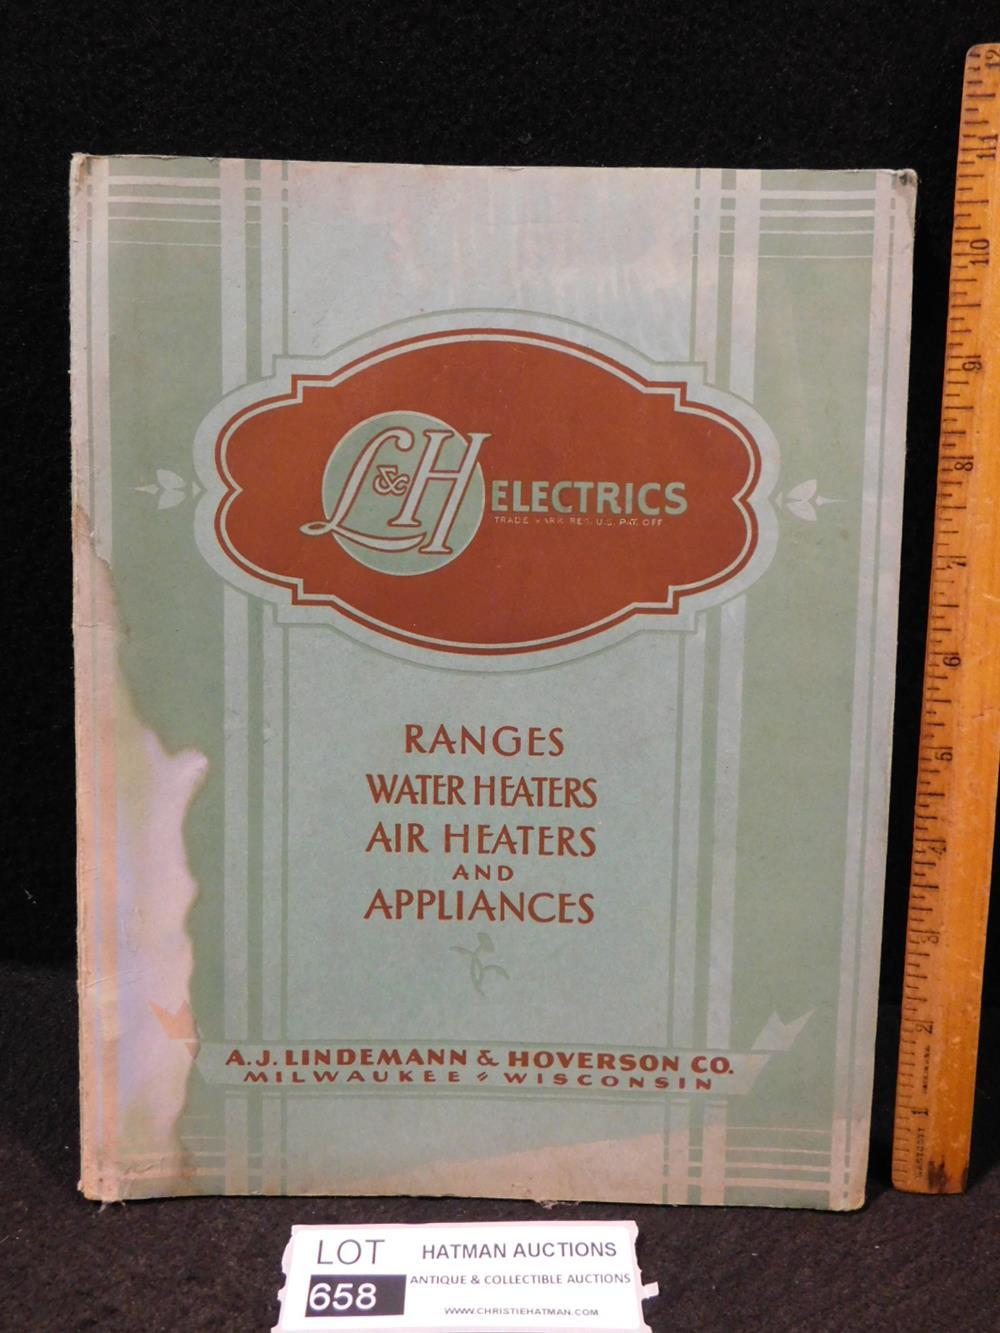 VINTAGE SUPPLY CATALOG L & H ELECTRIC RANGES WATER HEATERS AIR HEATERS AND APPLIANCES BOOK